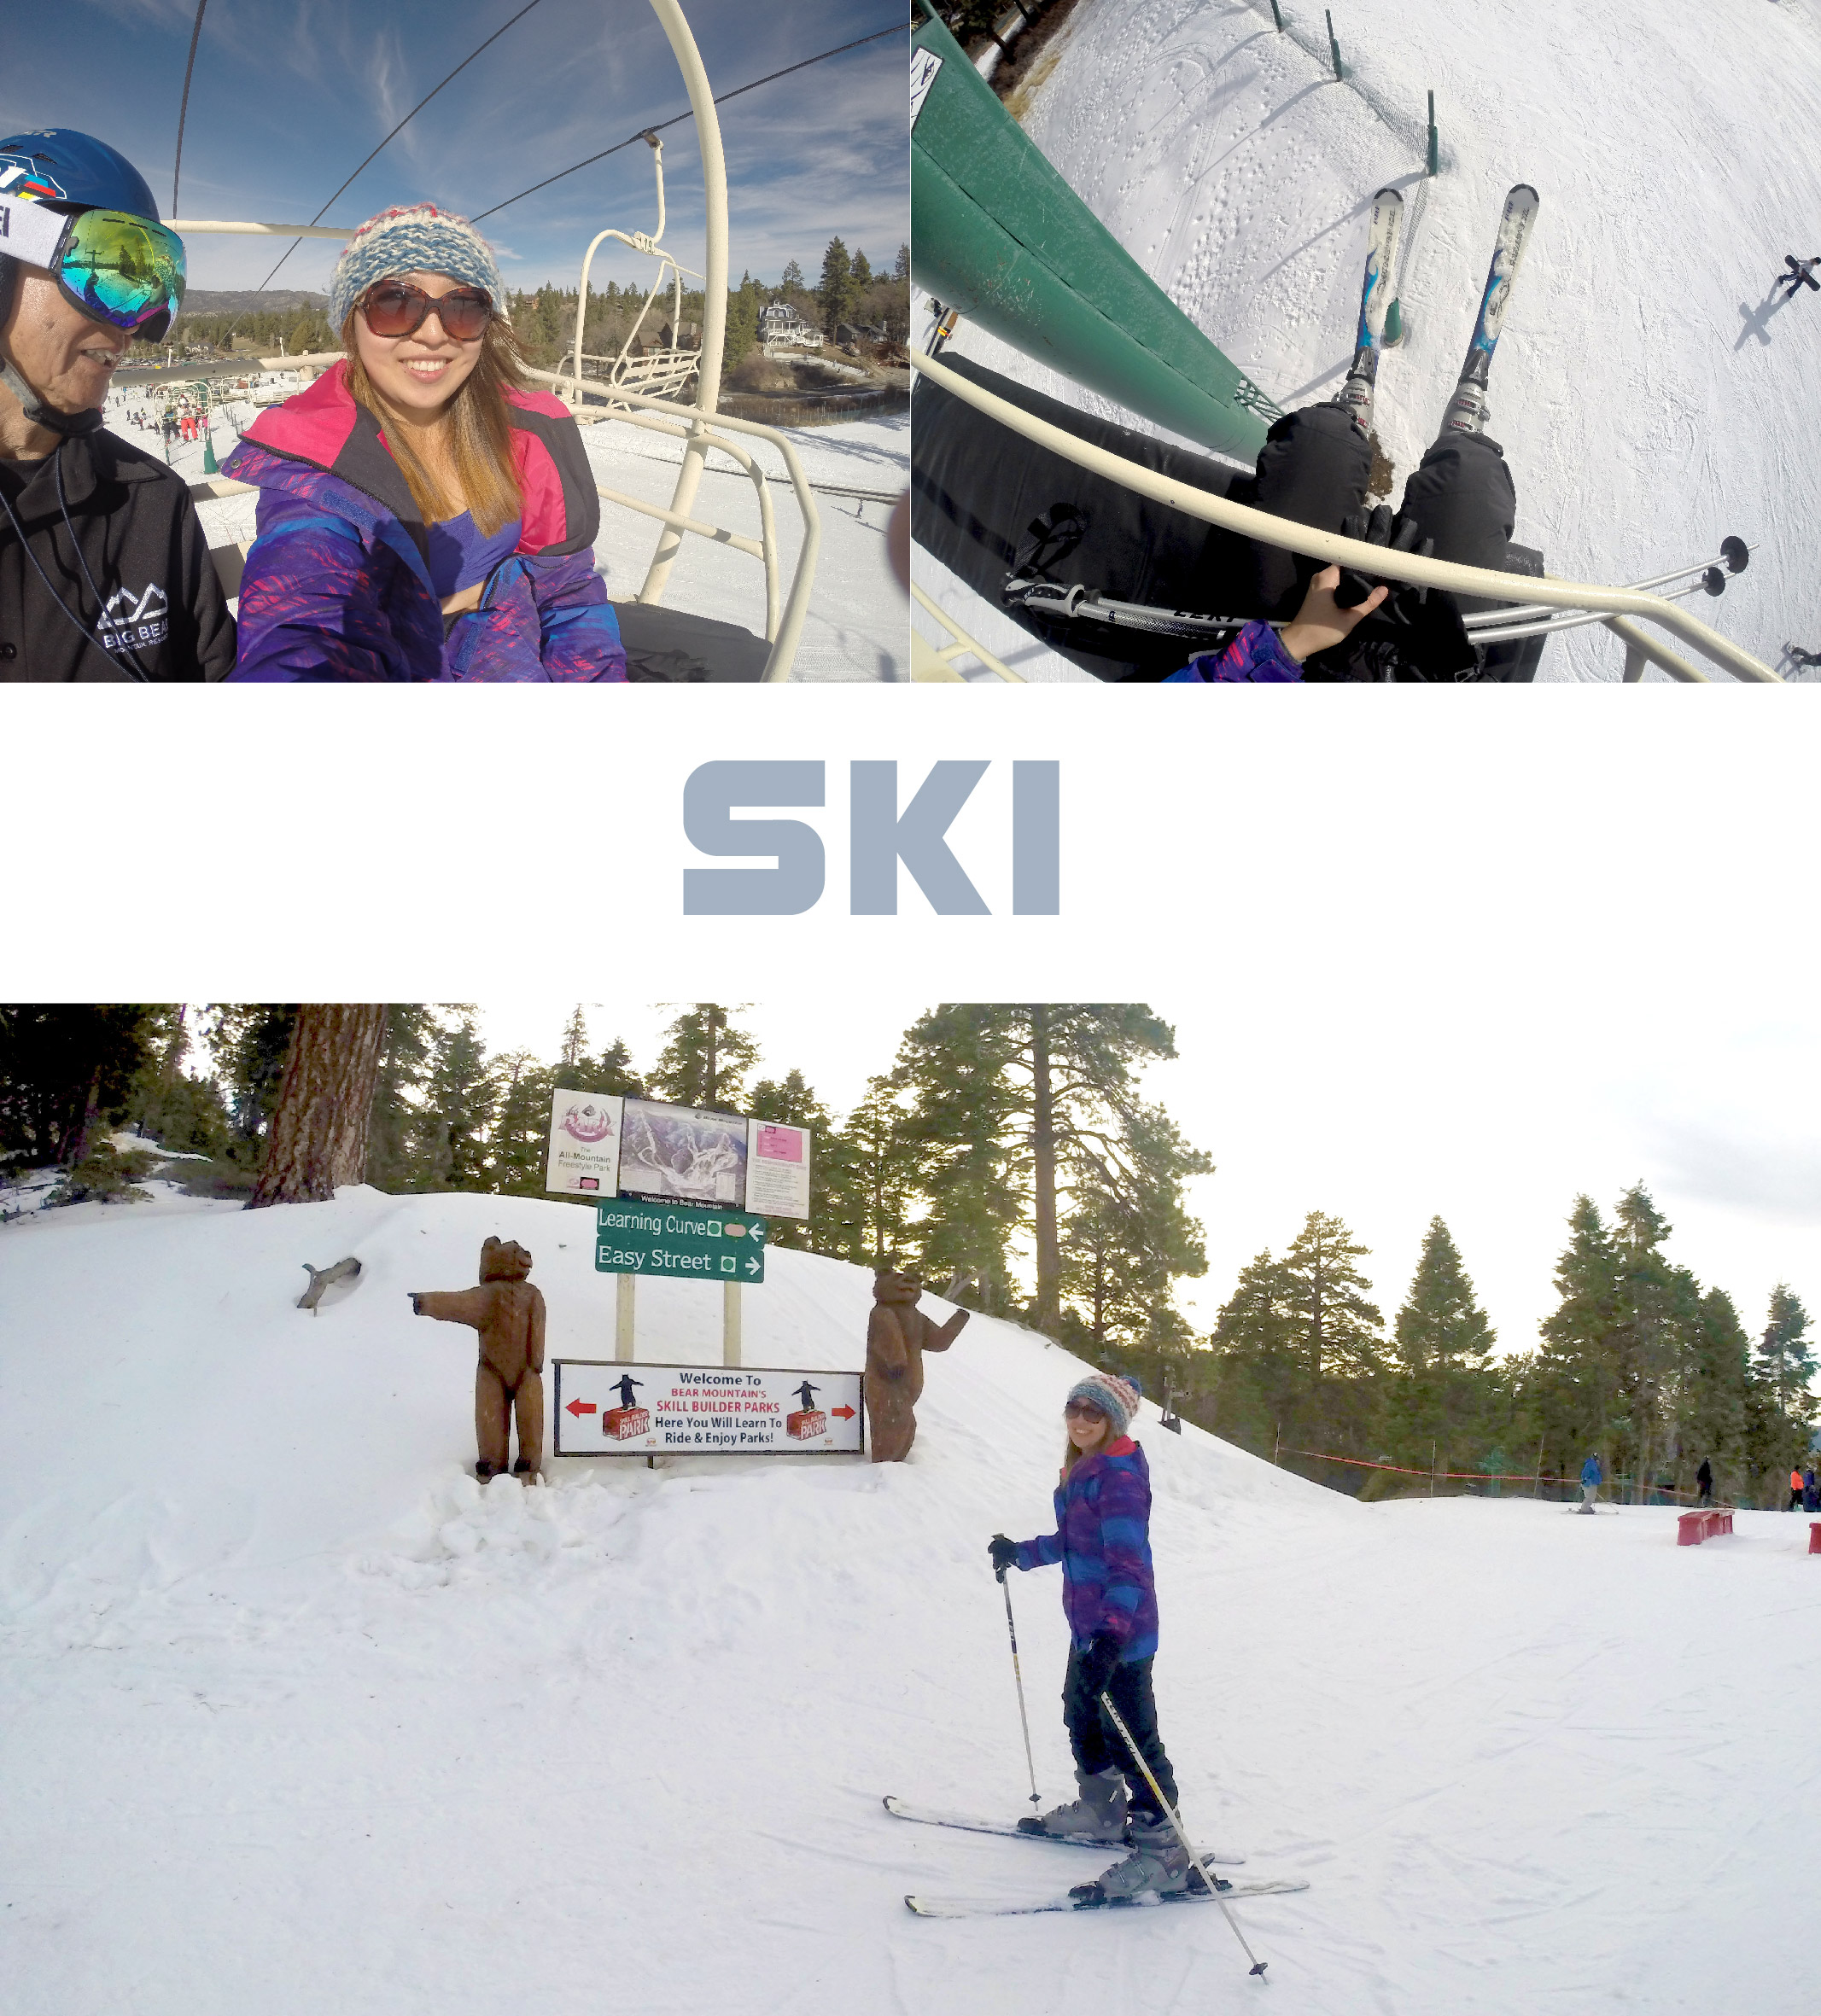 """Ski was fun but the boots were not as comfortable as snowboarding boots. At the end of the day, I was able to slide down by """"pizza"""" shape and change my direction."""